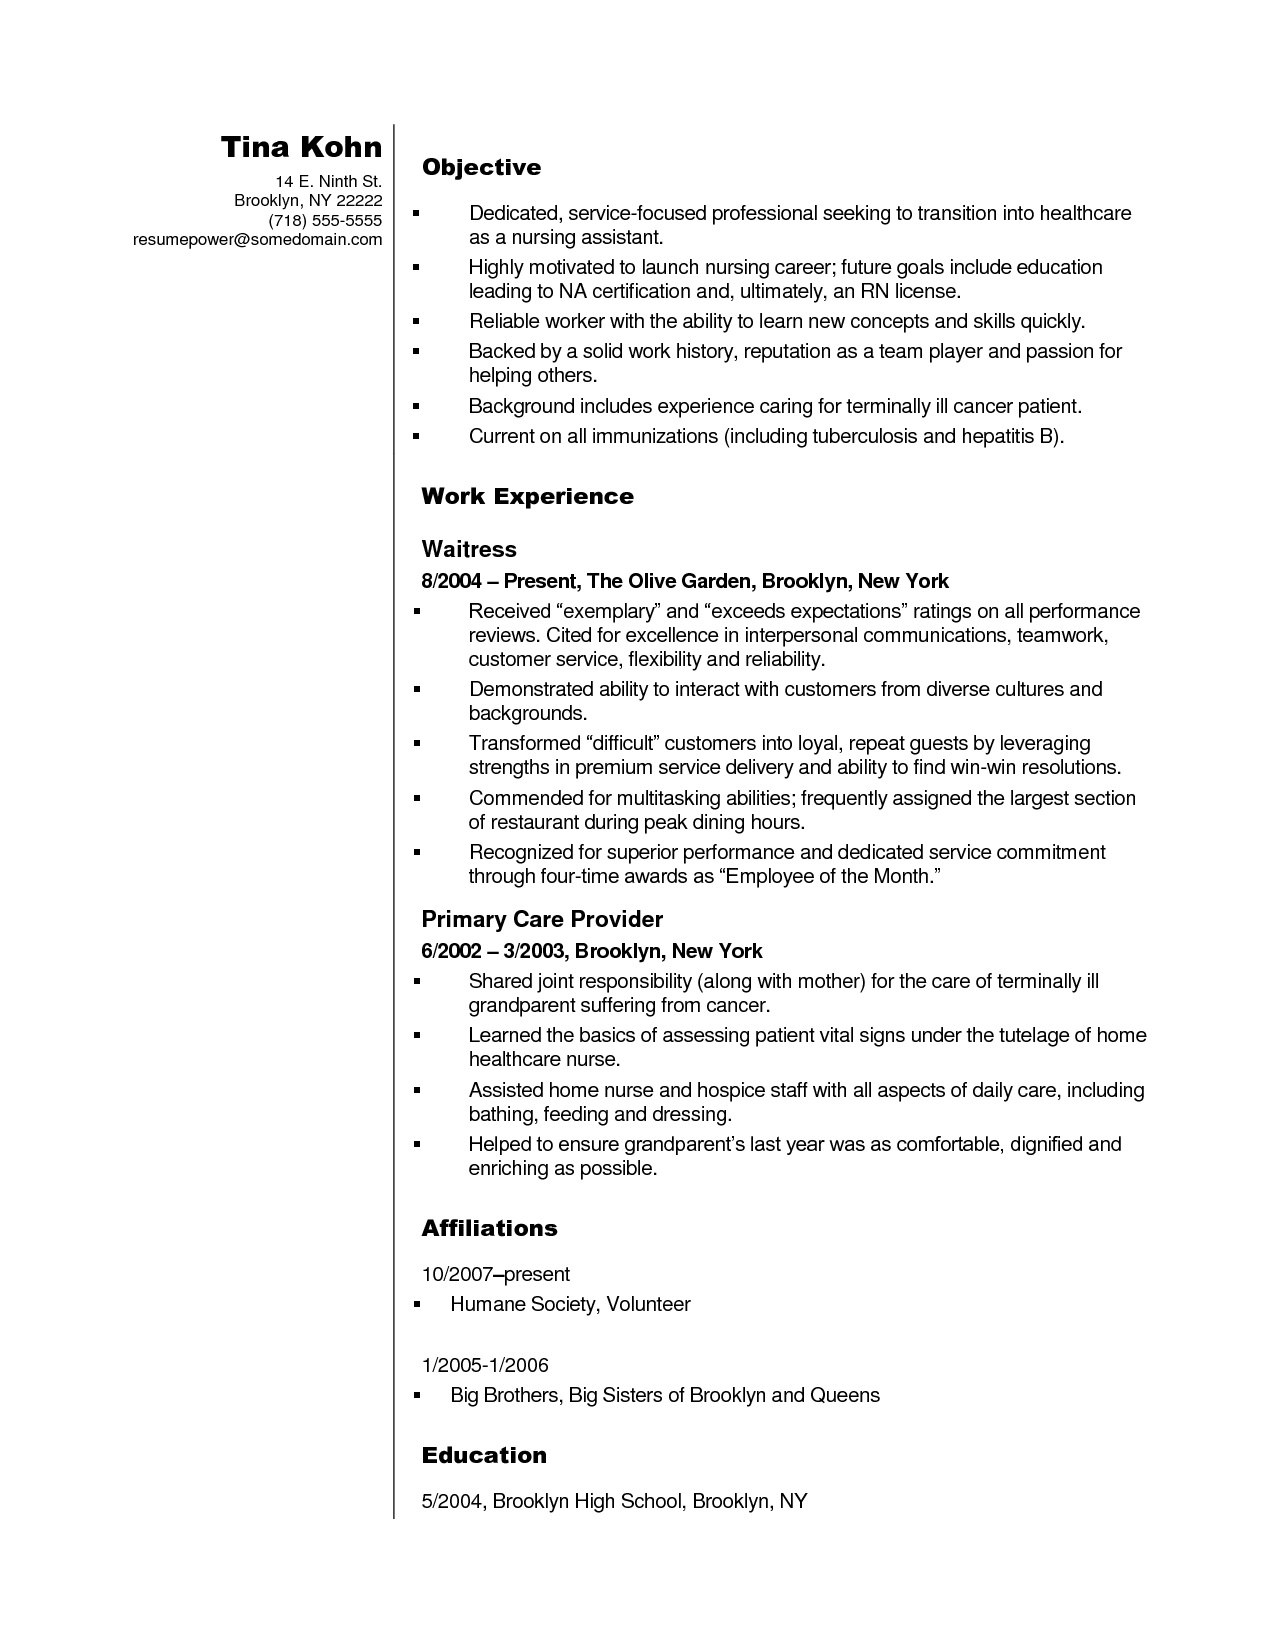 Cna Resumes with No Experience - Nursing assistant Resume Objective Examples Fresh Cna Resume Sample